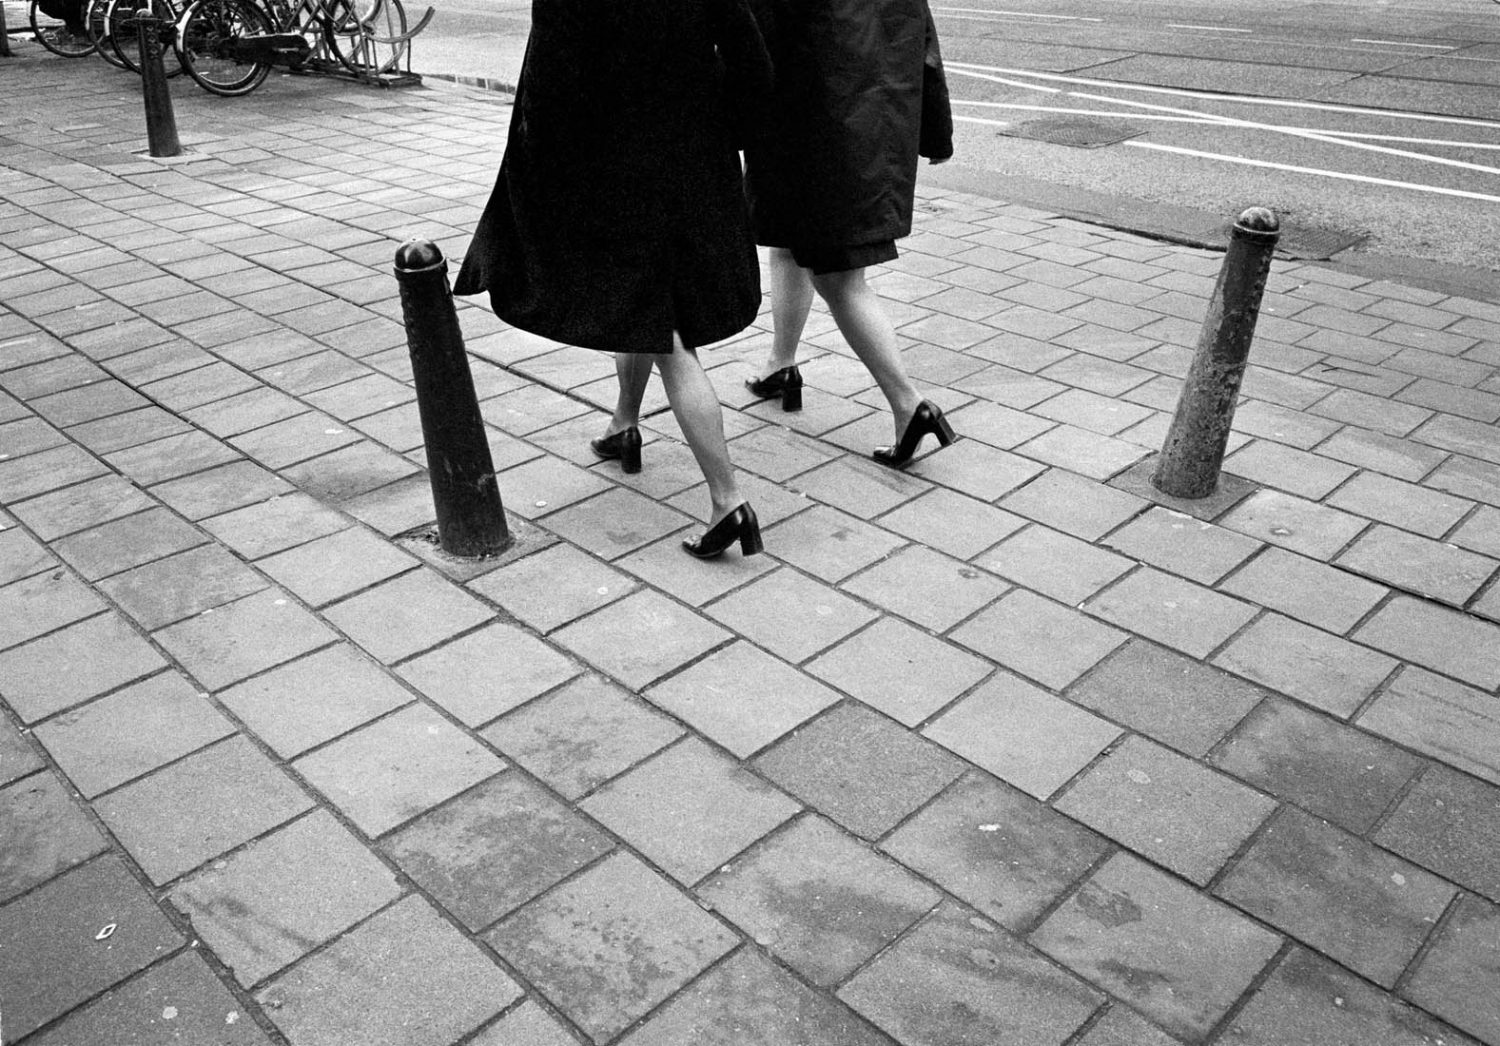 Nederland, Amsterdam, 10-01-2000 Beautiful en elegant woman legs on high heels in the streets of Amsterdam PHOTO AND COPYRIGHT ROGER CREMERS